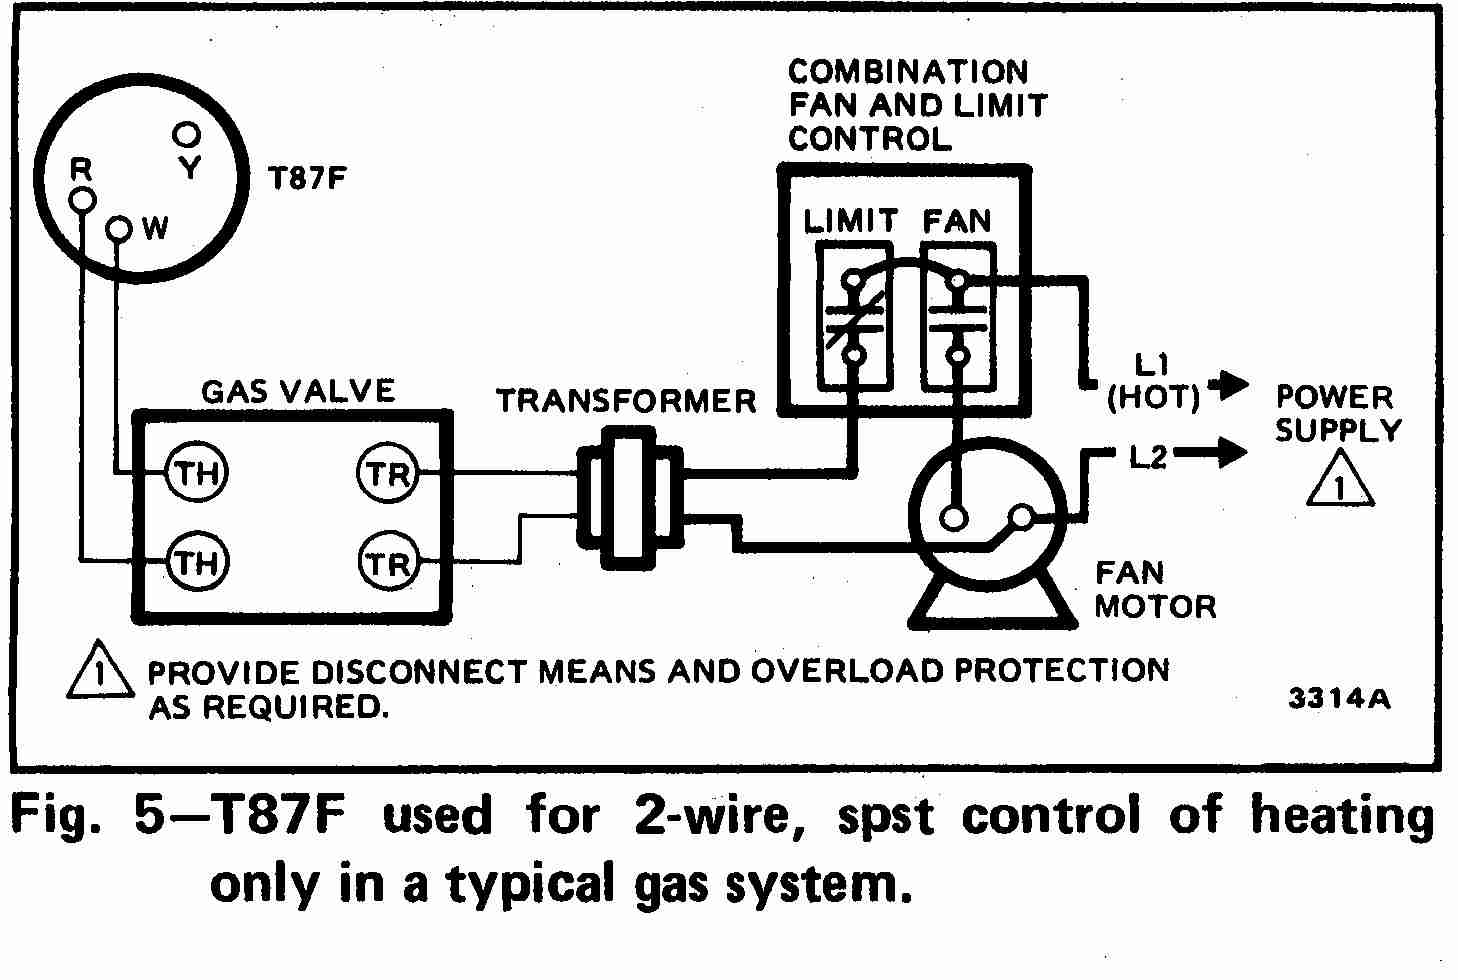 Heat Wire Diagram Payne Package Pump Wiring Guide To Connections For Room Thermostats Honeywell T87f Thermostat 2 Spst